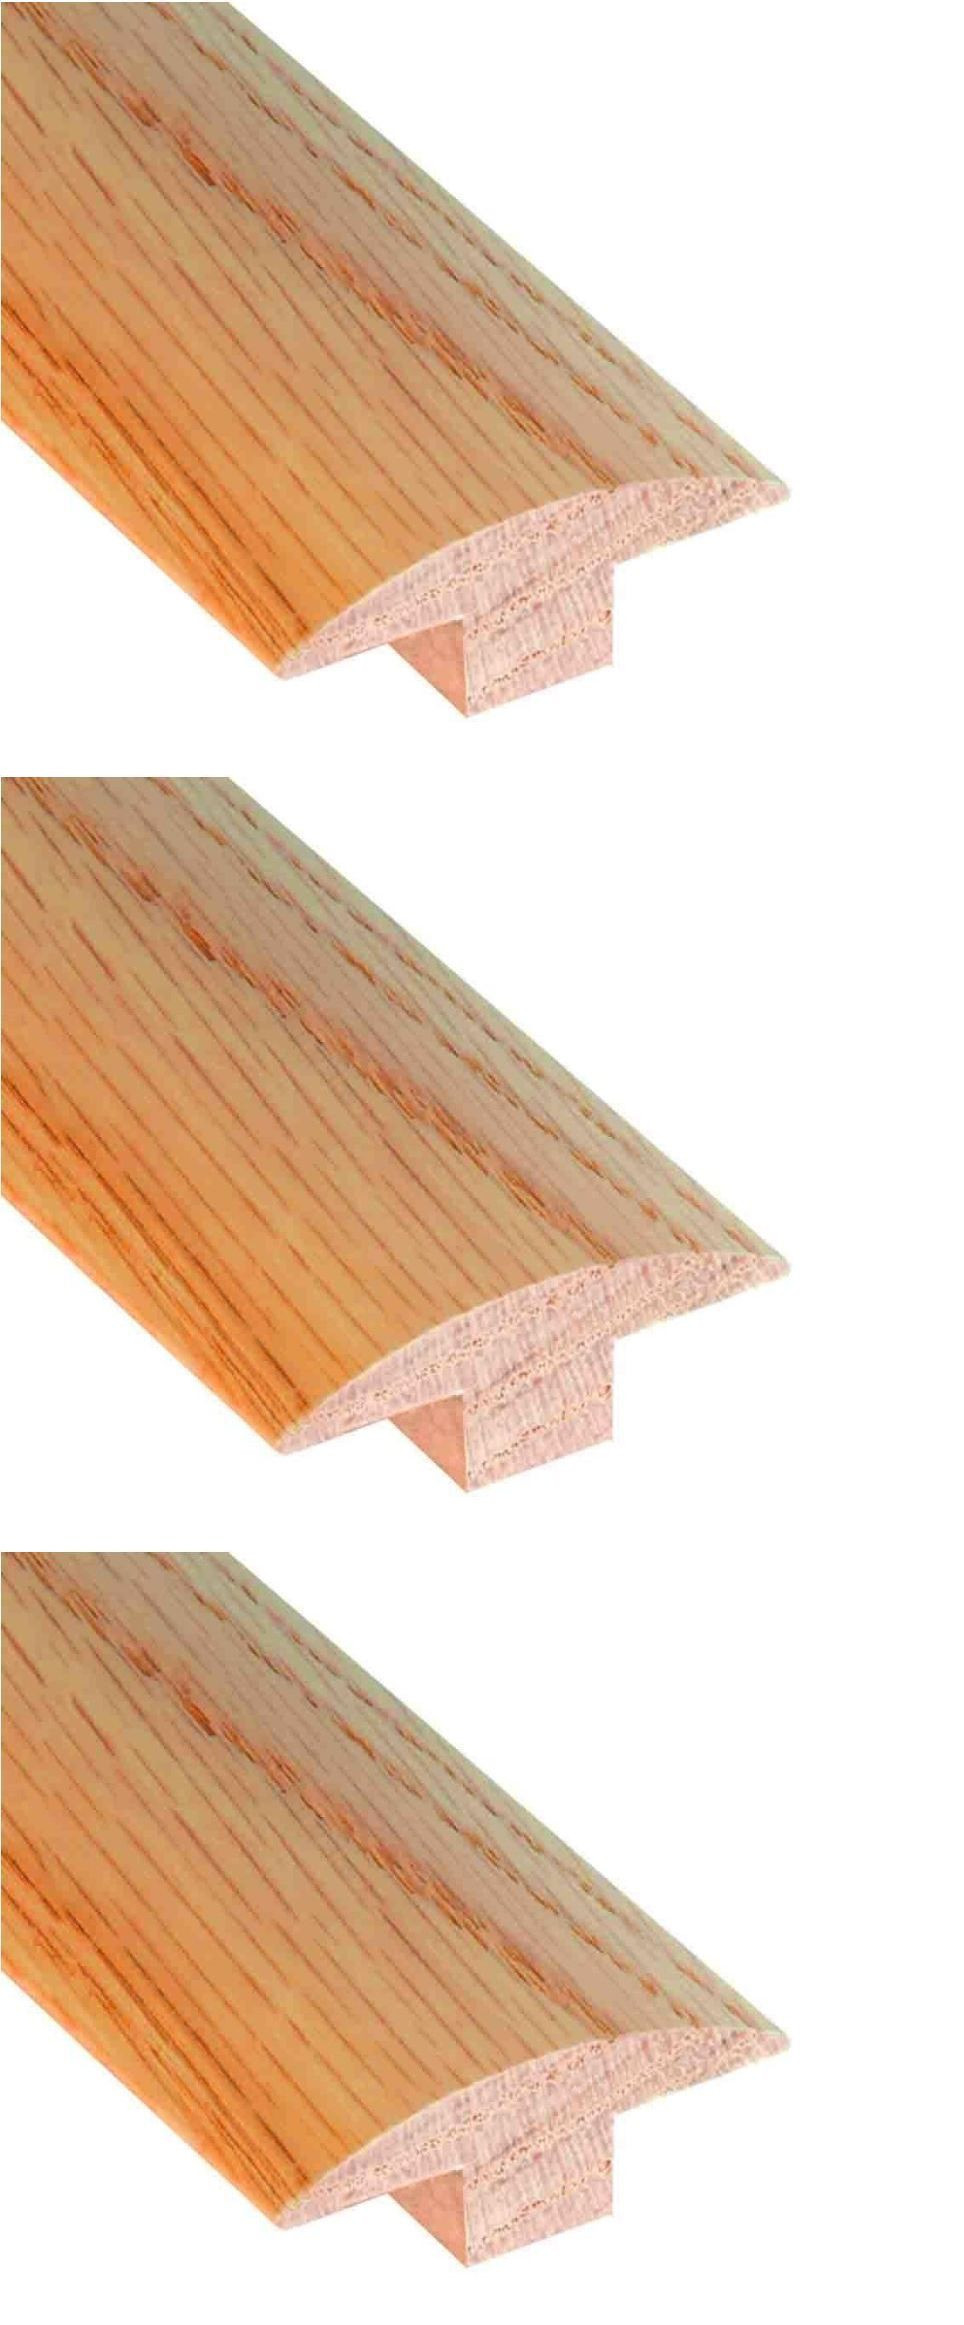 hardwood flooring trim molding of flooring moldings and trims 129788 unfinished oak 647 x 2 x 78 in regarding flooring moldings and trims 129788 unfinished oak 647 x 2 x 78 in